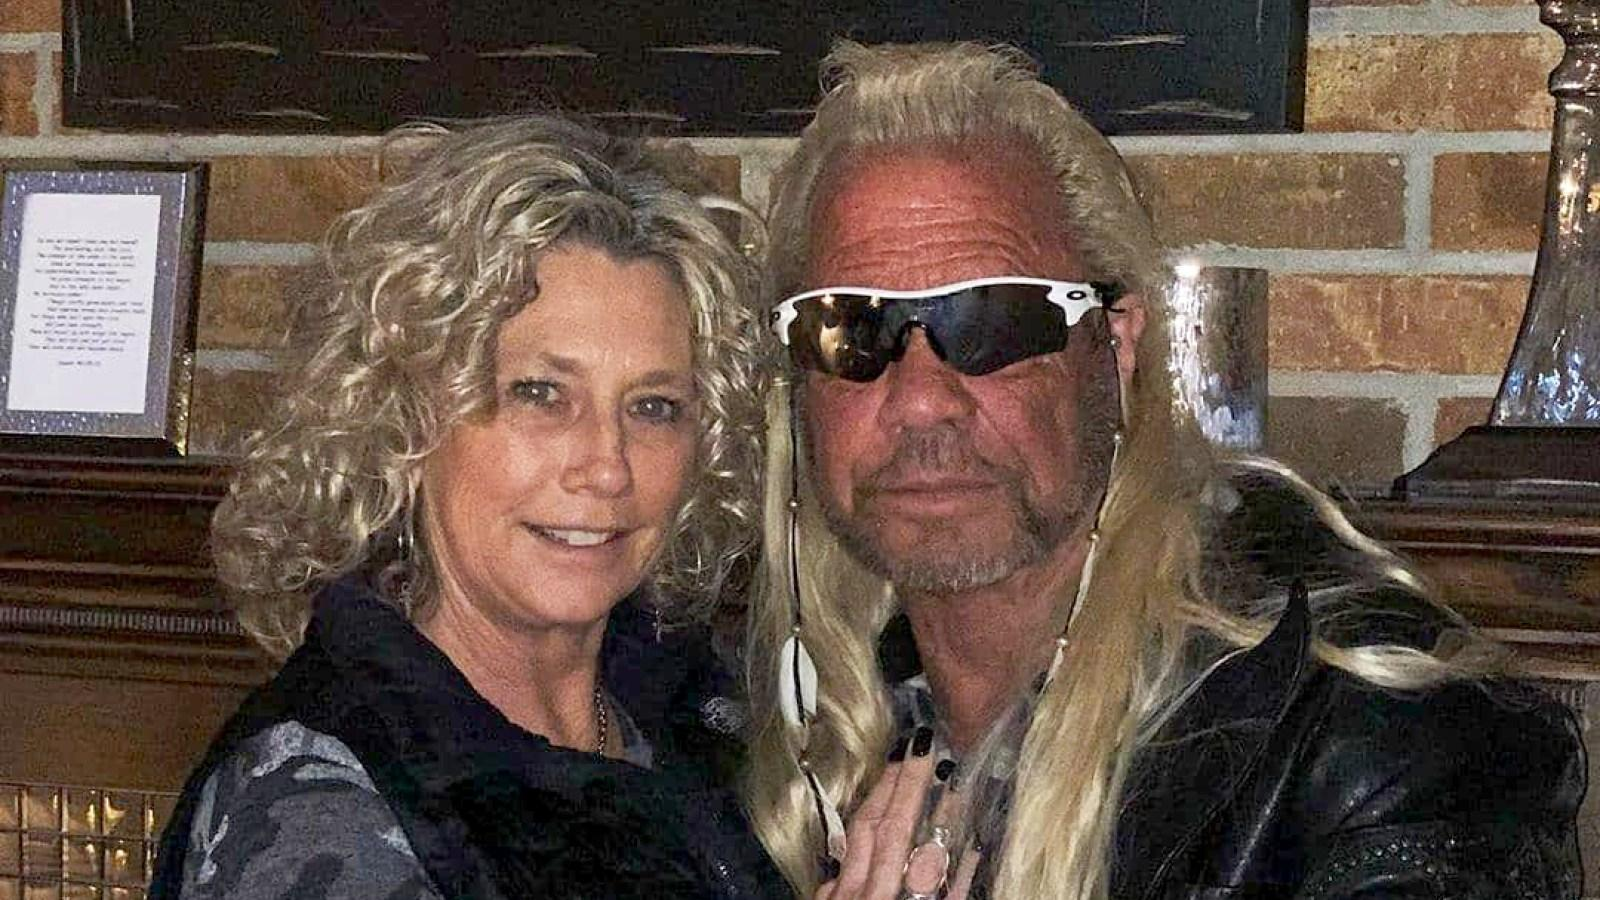 Dog The Bounty Hunter Not Planning To Remarry Even Though He Wants To Spend The Rest Of His Life With New GF Francie Frane - Here's Why!